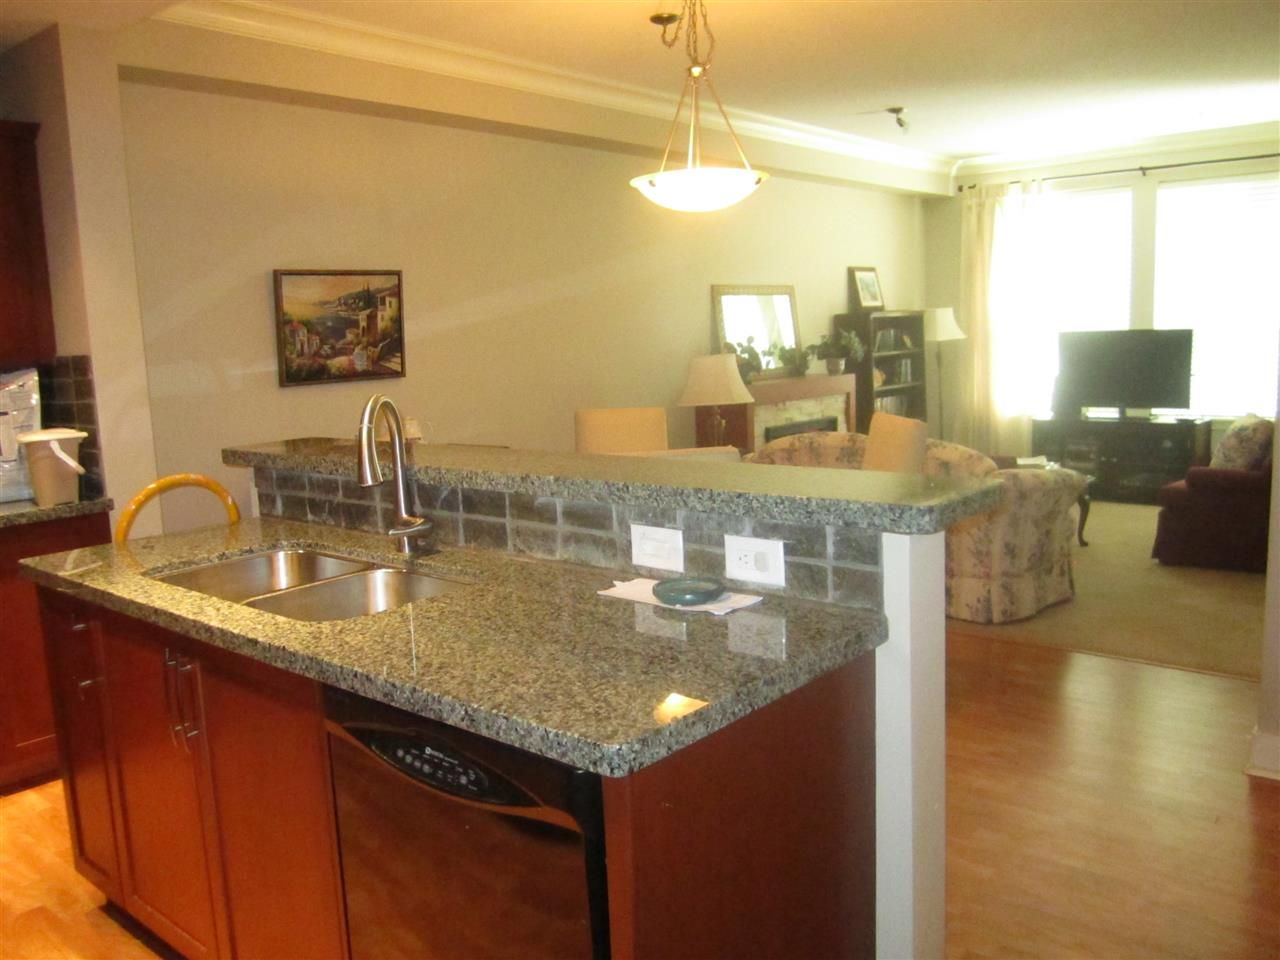 """Photo 5: Photos: 106 5430 201 Street in Langley: Langley City Condo for sale in """"The Sonnet"""" : MLS®# R2086075"""